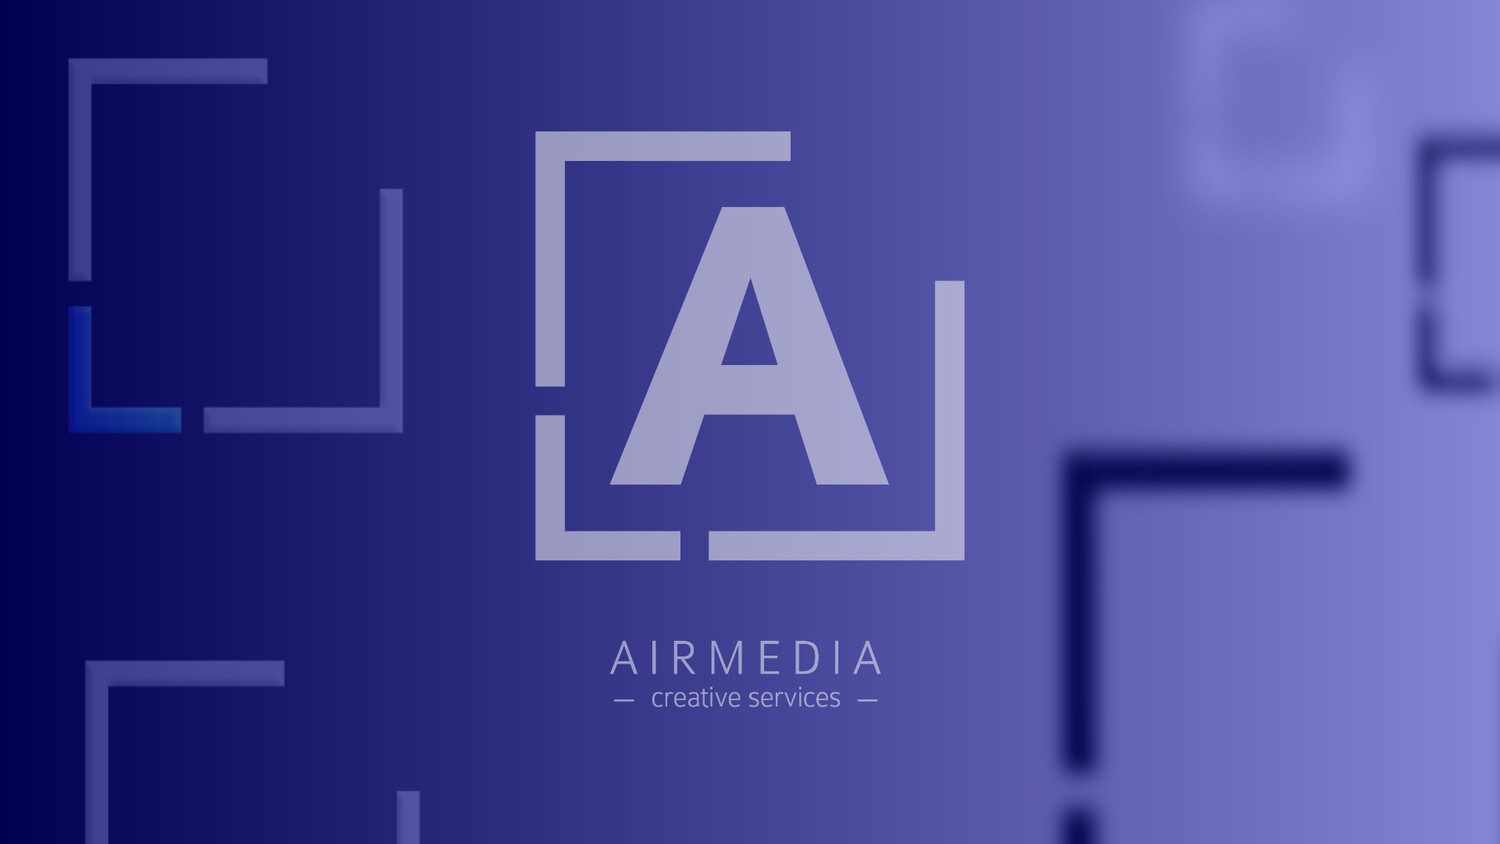 Vocal Elements | Elements and Work Parts | Air Media